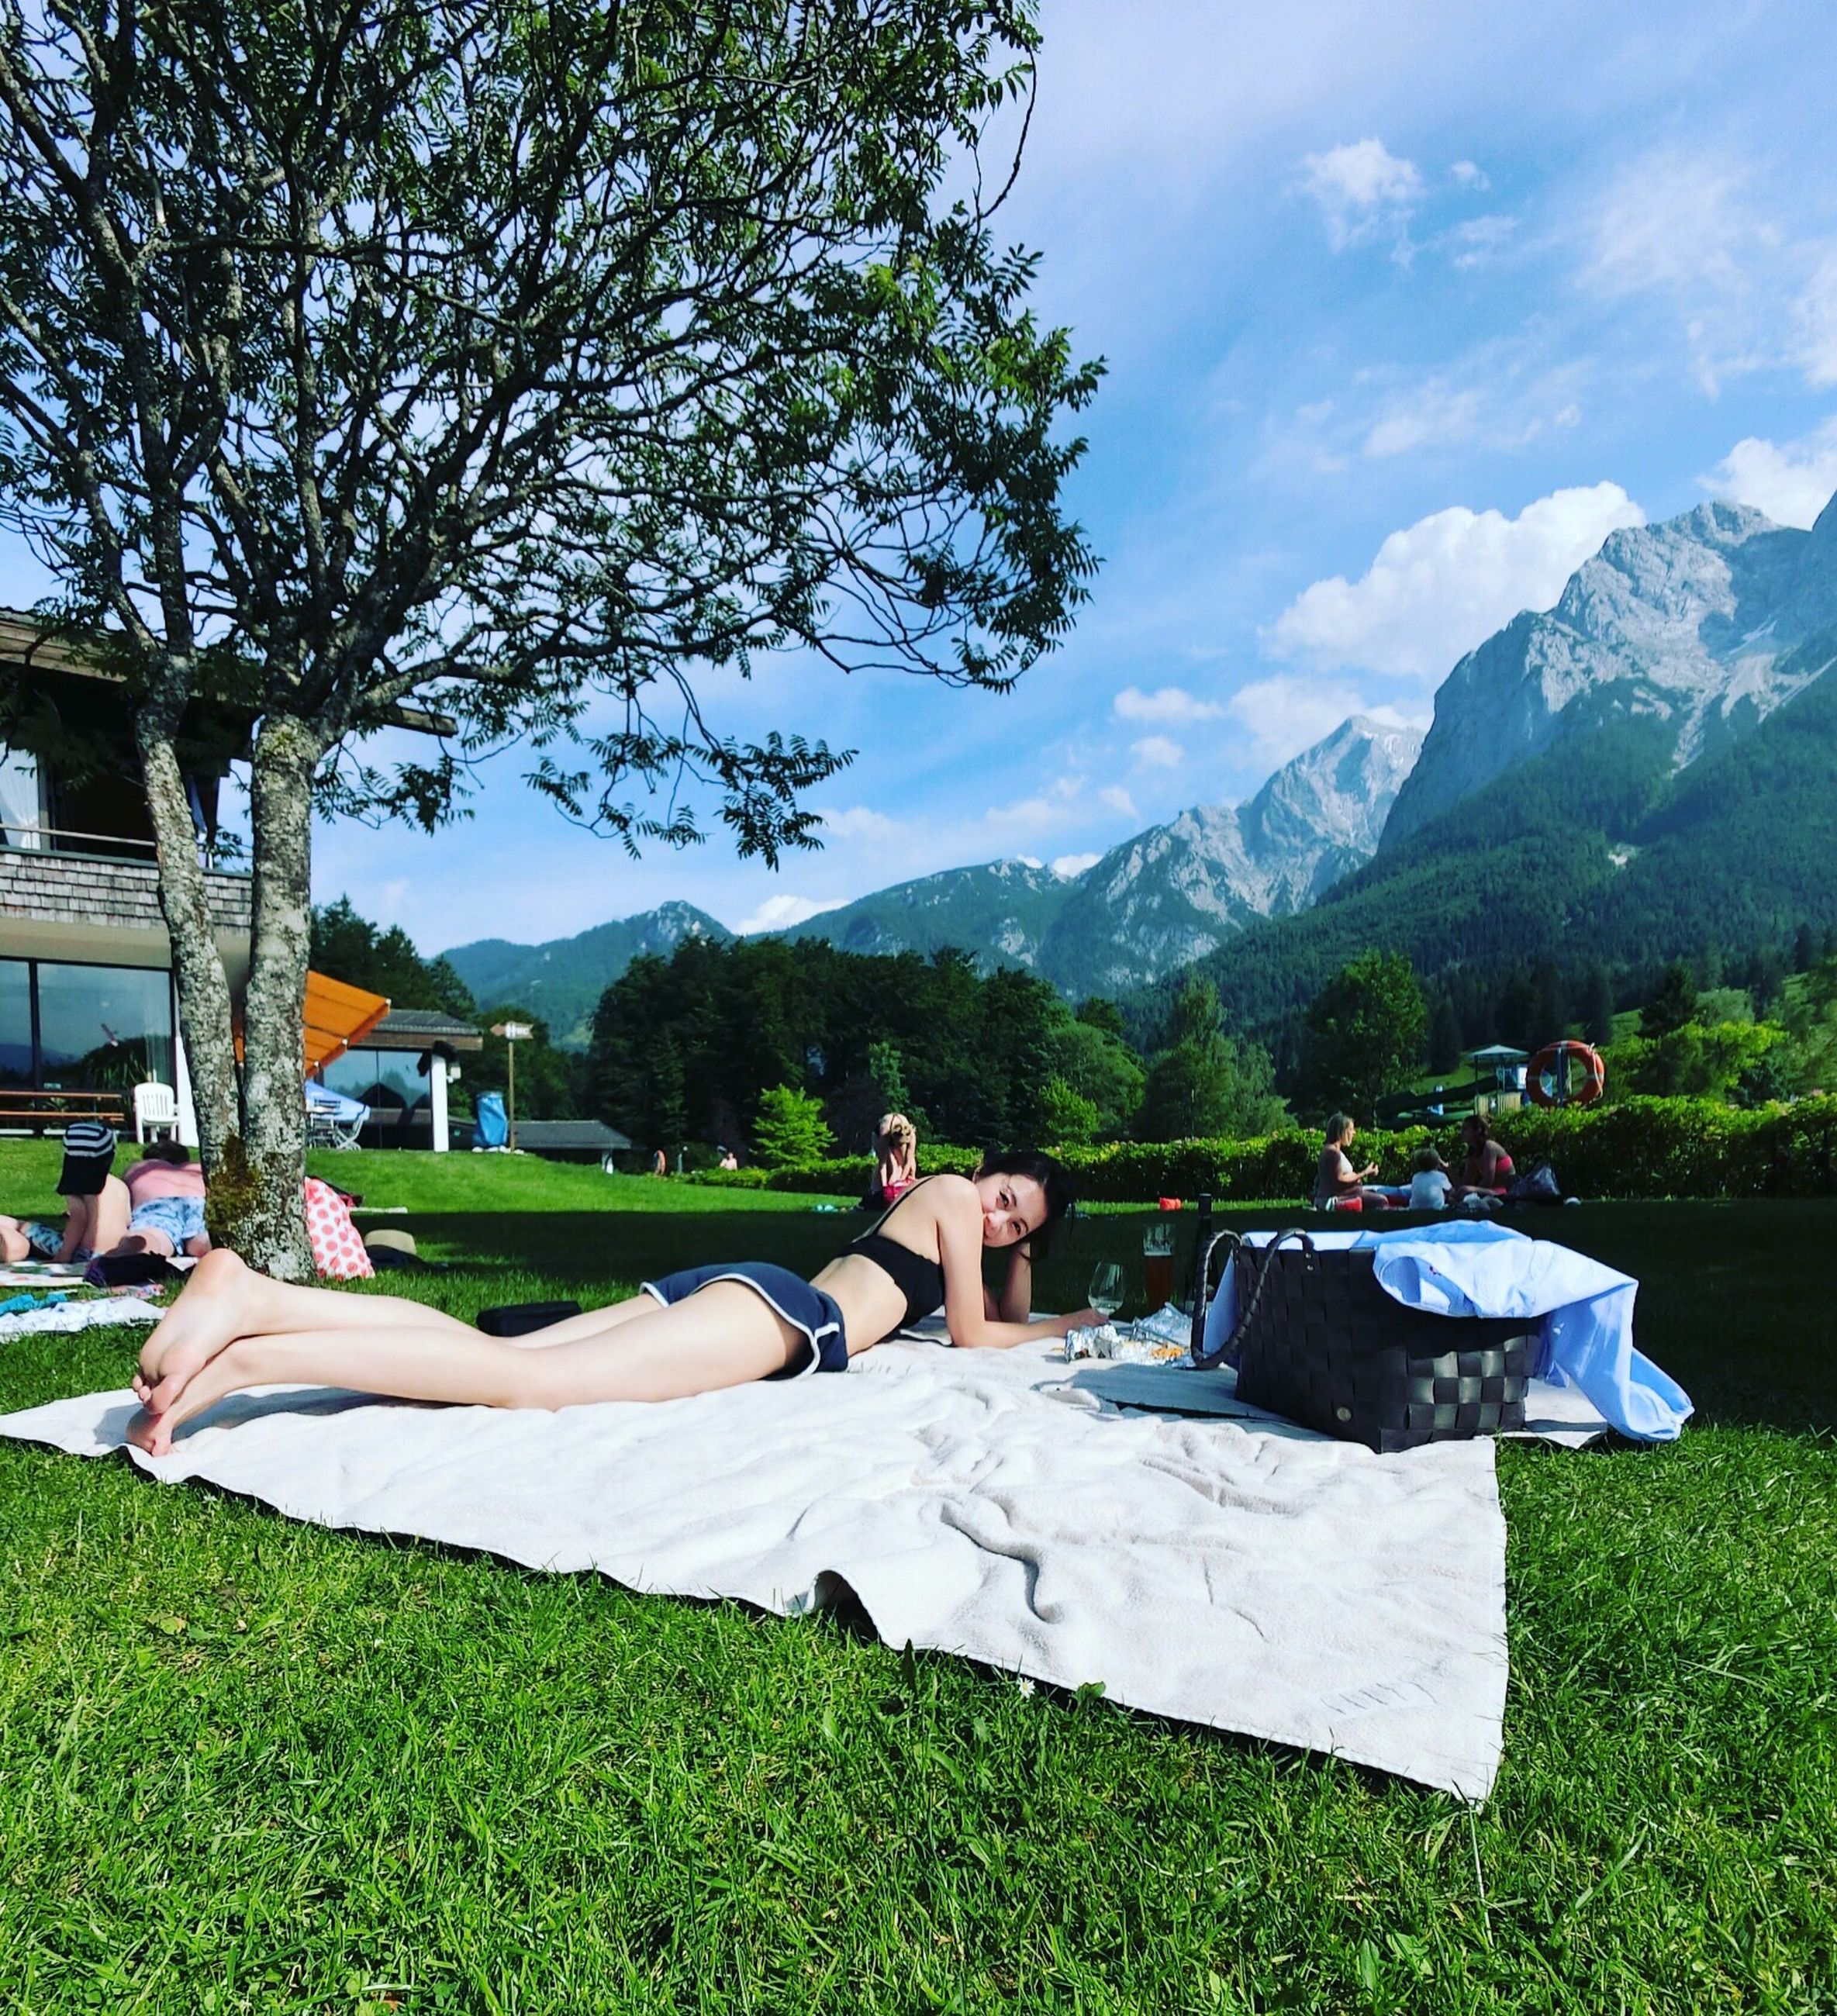 lying down, lying on back, tree, relaxation, grass, low section, day, leisure activity, outdoors, real people, sky, one person, nature, barefoot, full length, human leg, mountain, lifestyles, sunlight, women, men, beauty in nature, wireless technology, young adult, people